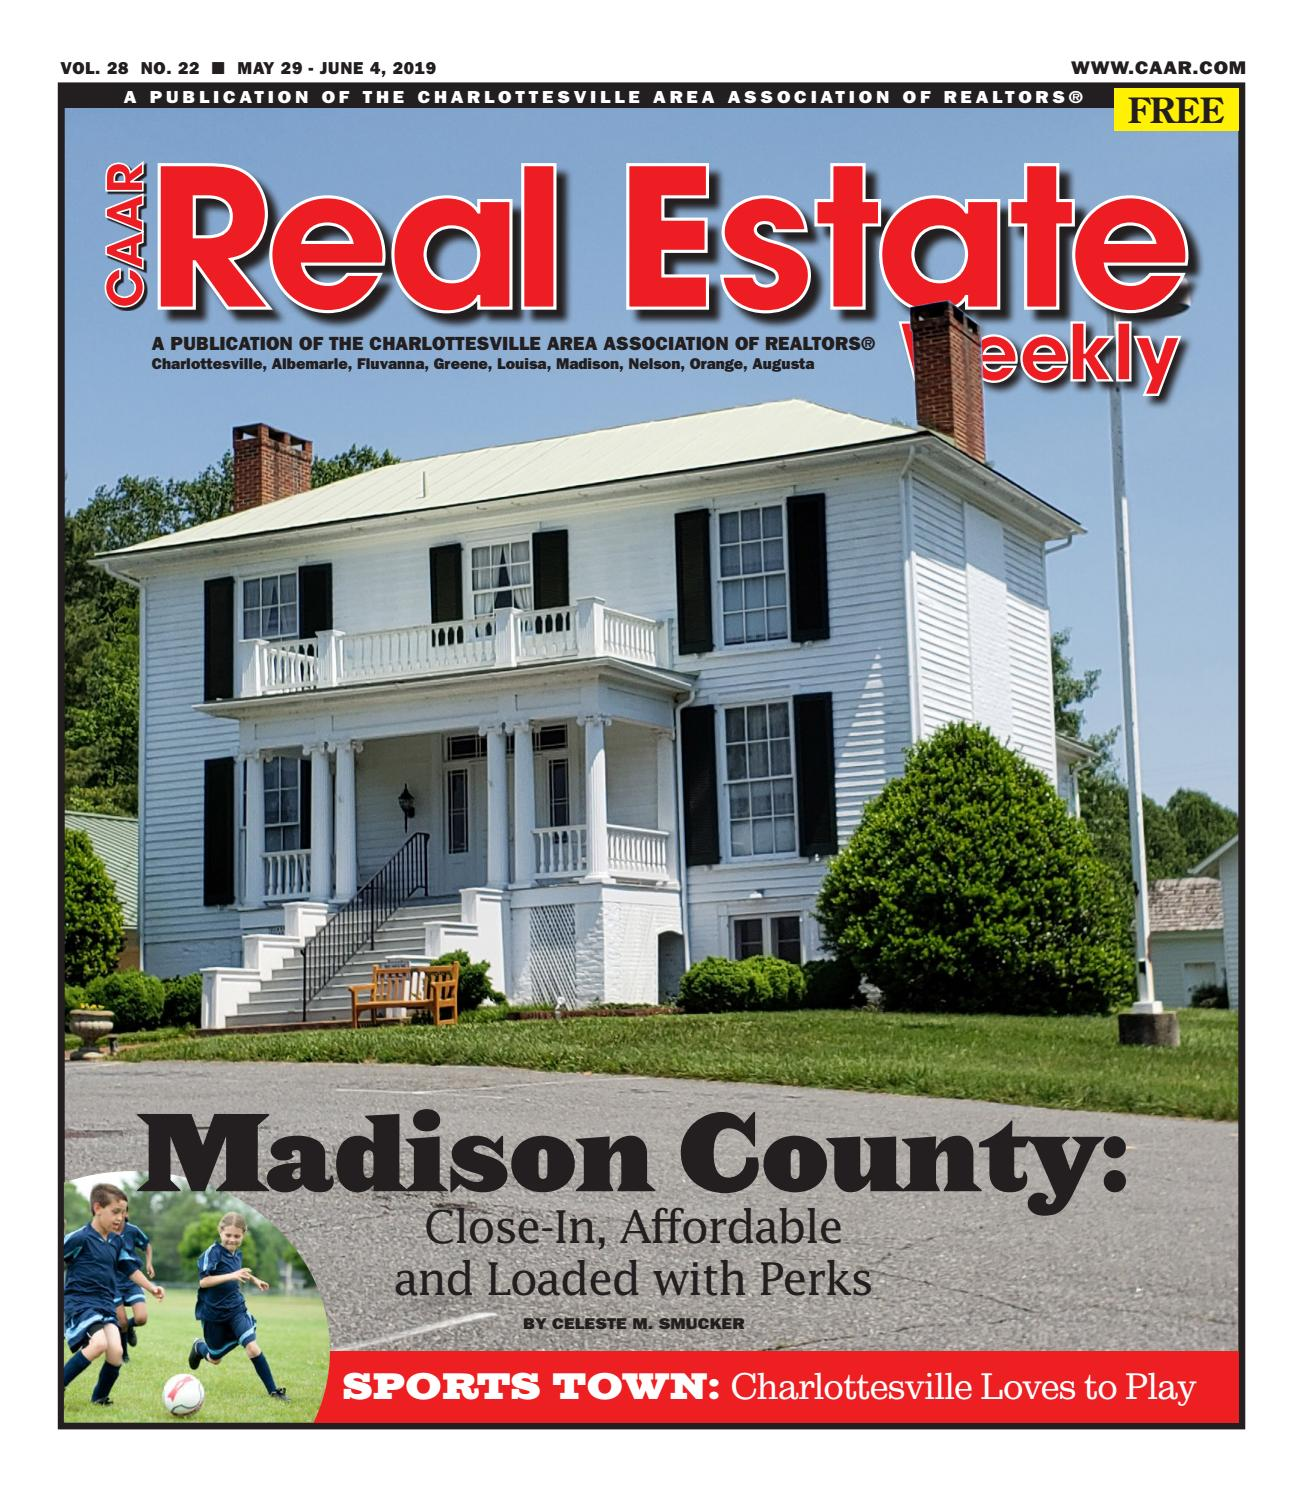 The Real Estate Weekly 5 29 2019 by The Real Estate Weekly - issuu